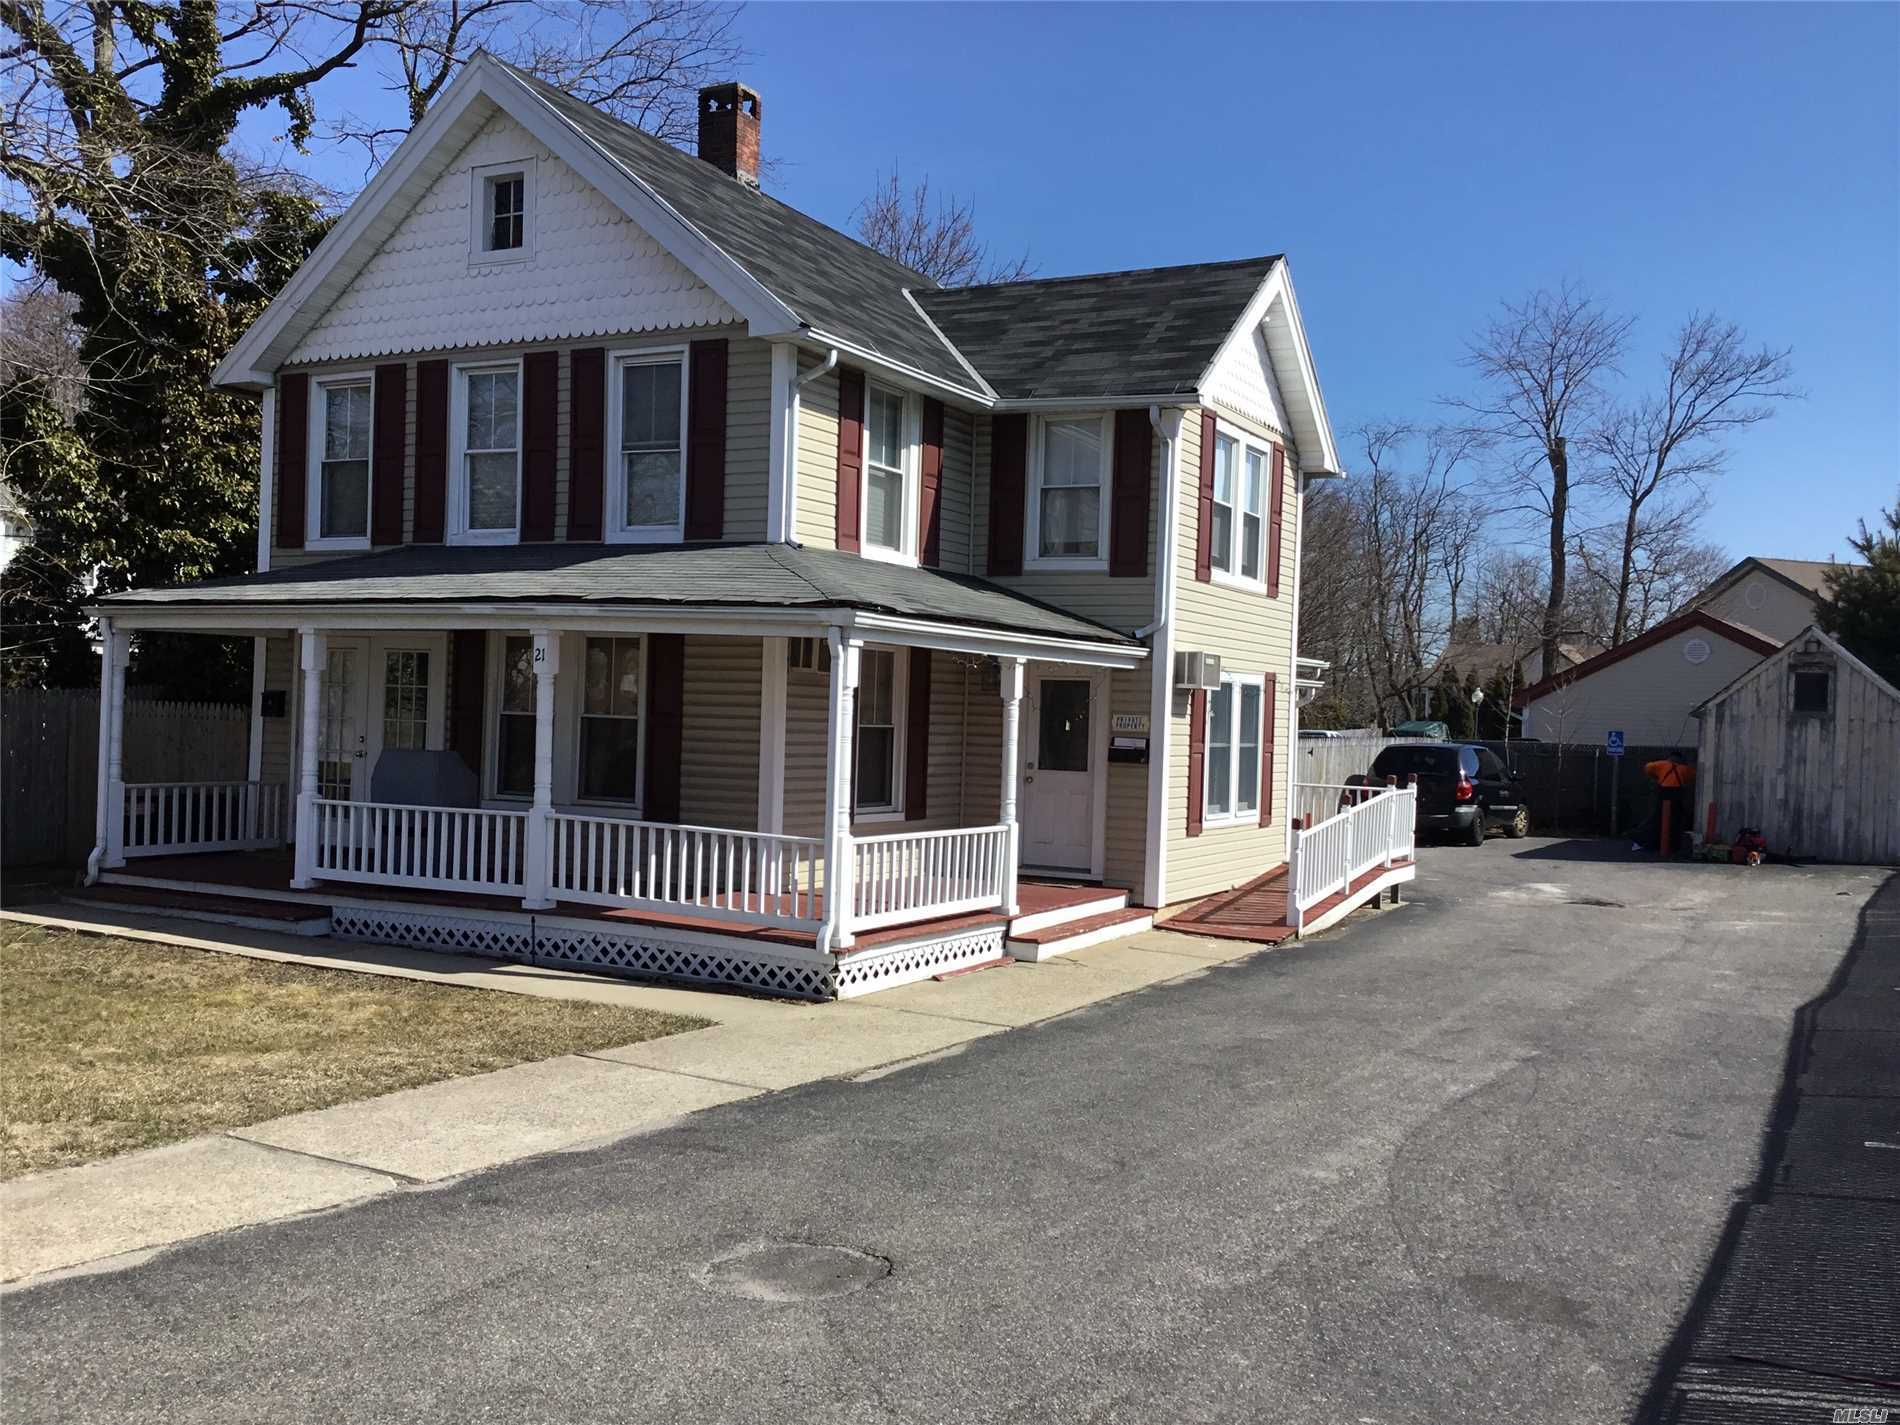 Legal Two in the Heart of Town. Completely Redone this December ( Kitchens, Baths, Flooring.) Updated Vinyl Siding, Roof and Windows. Maintenance Free home. Rocking Chair Porch. Great Investment